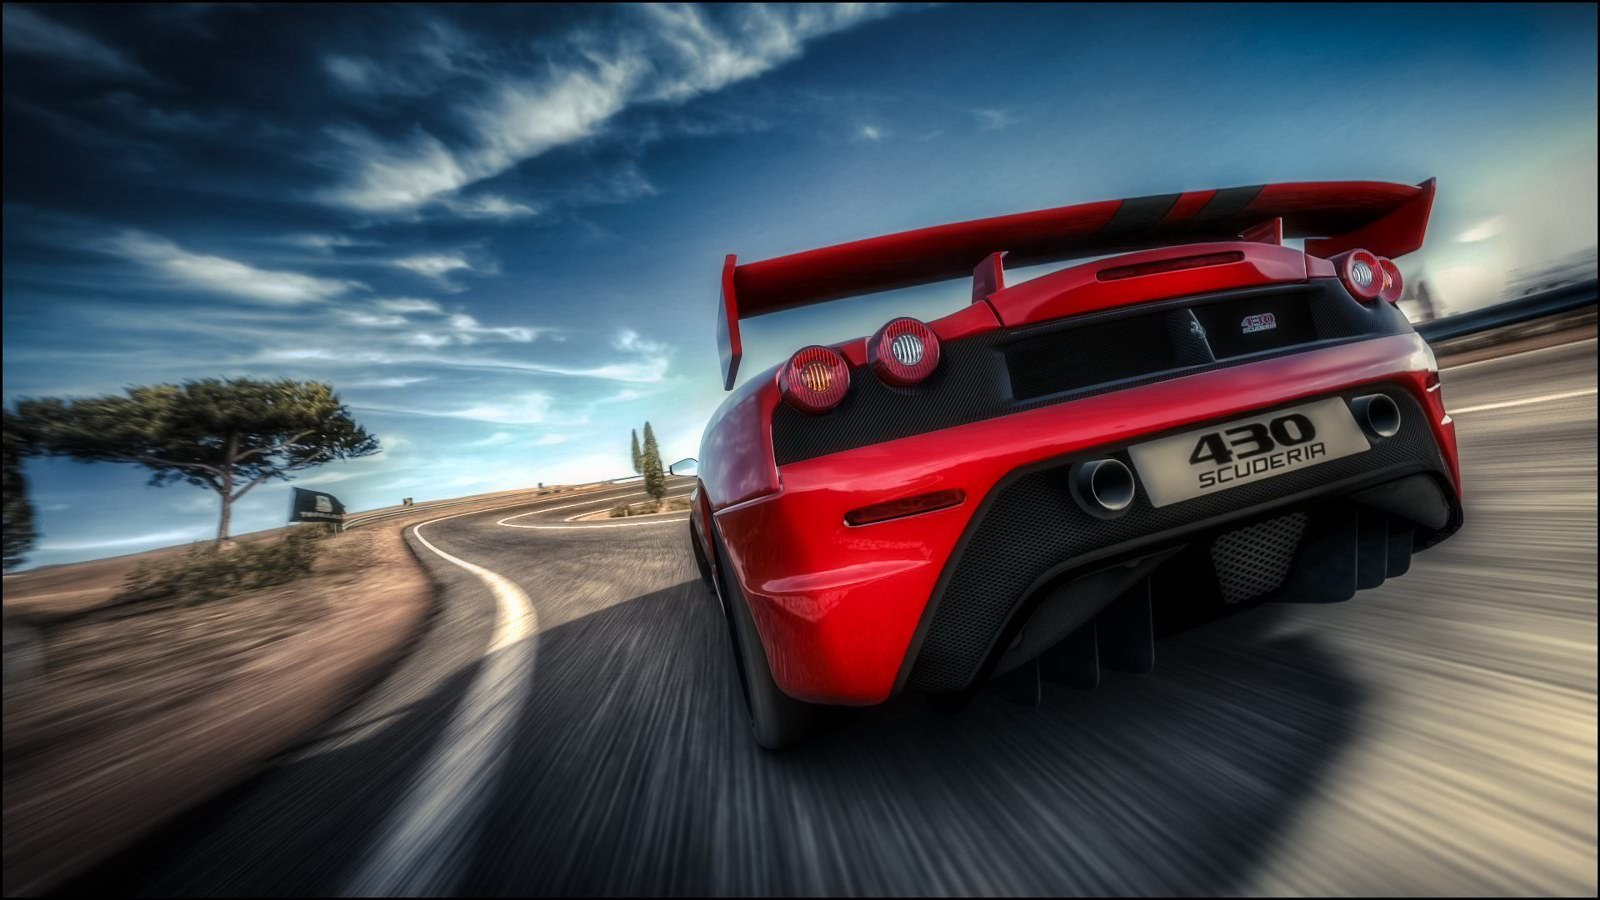 185 HD Car Backgrounds Wallpapers Images Pictures 1600x900